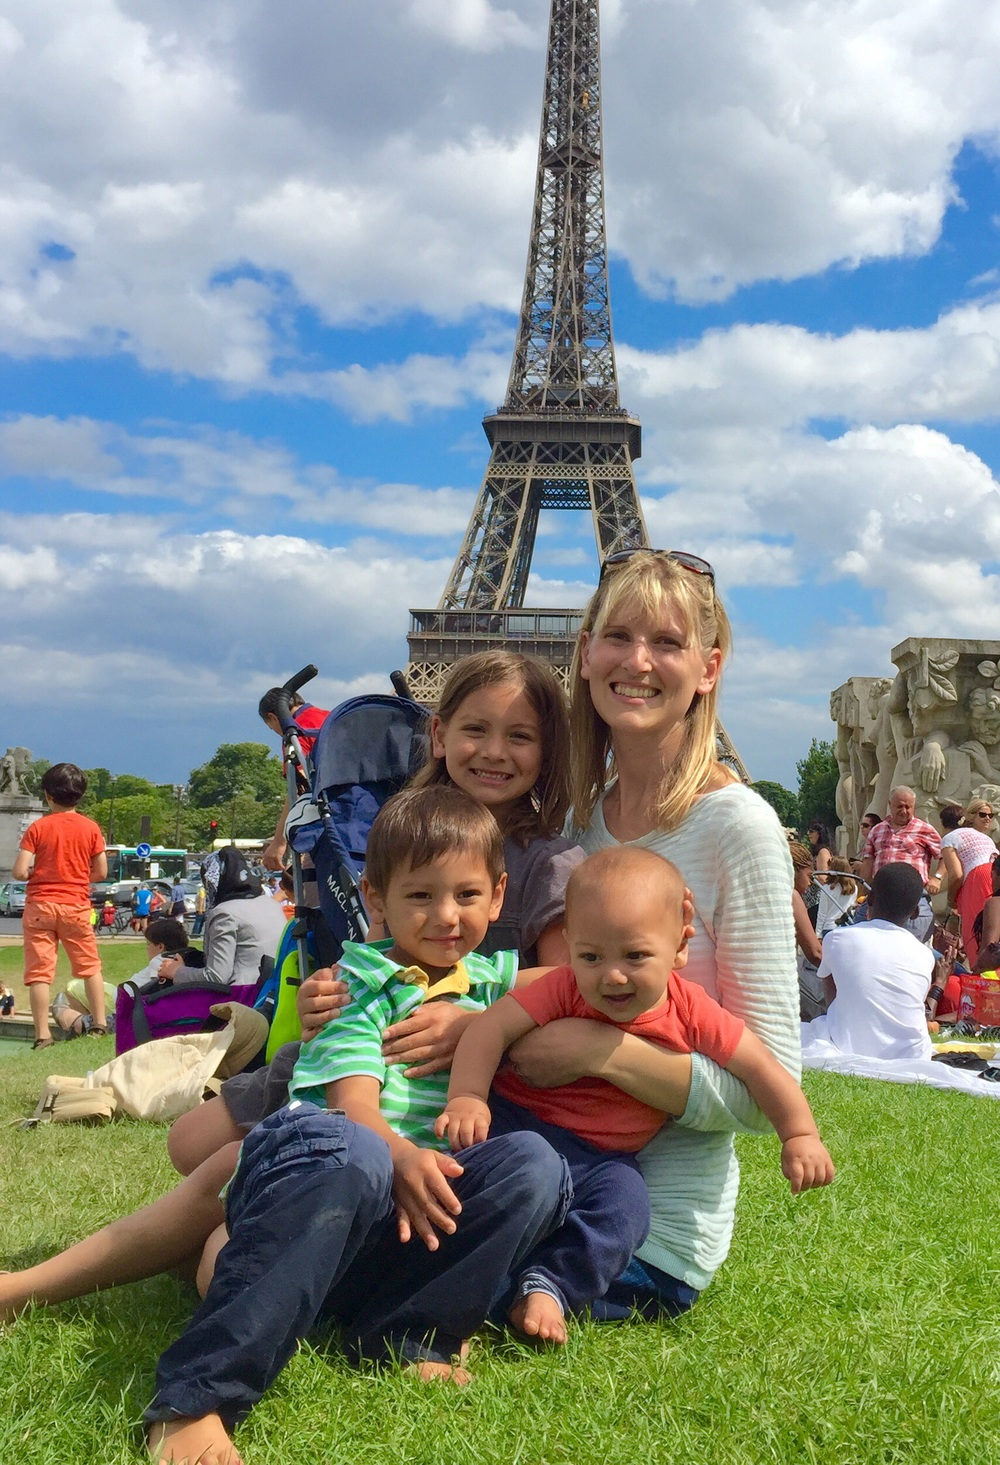 My children and I at Trocadero near the Eiffel Tower